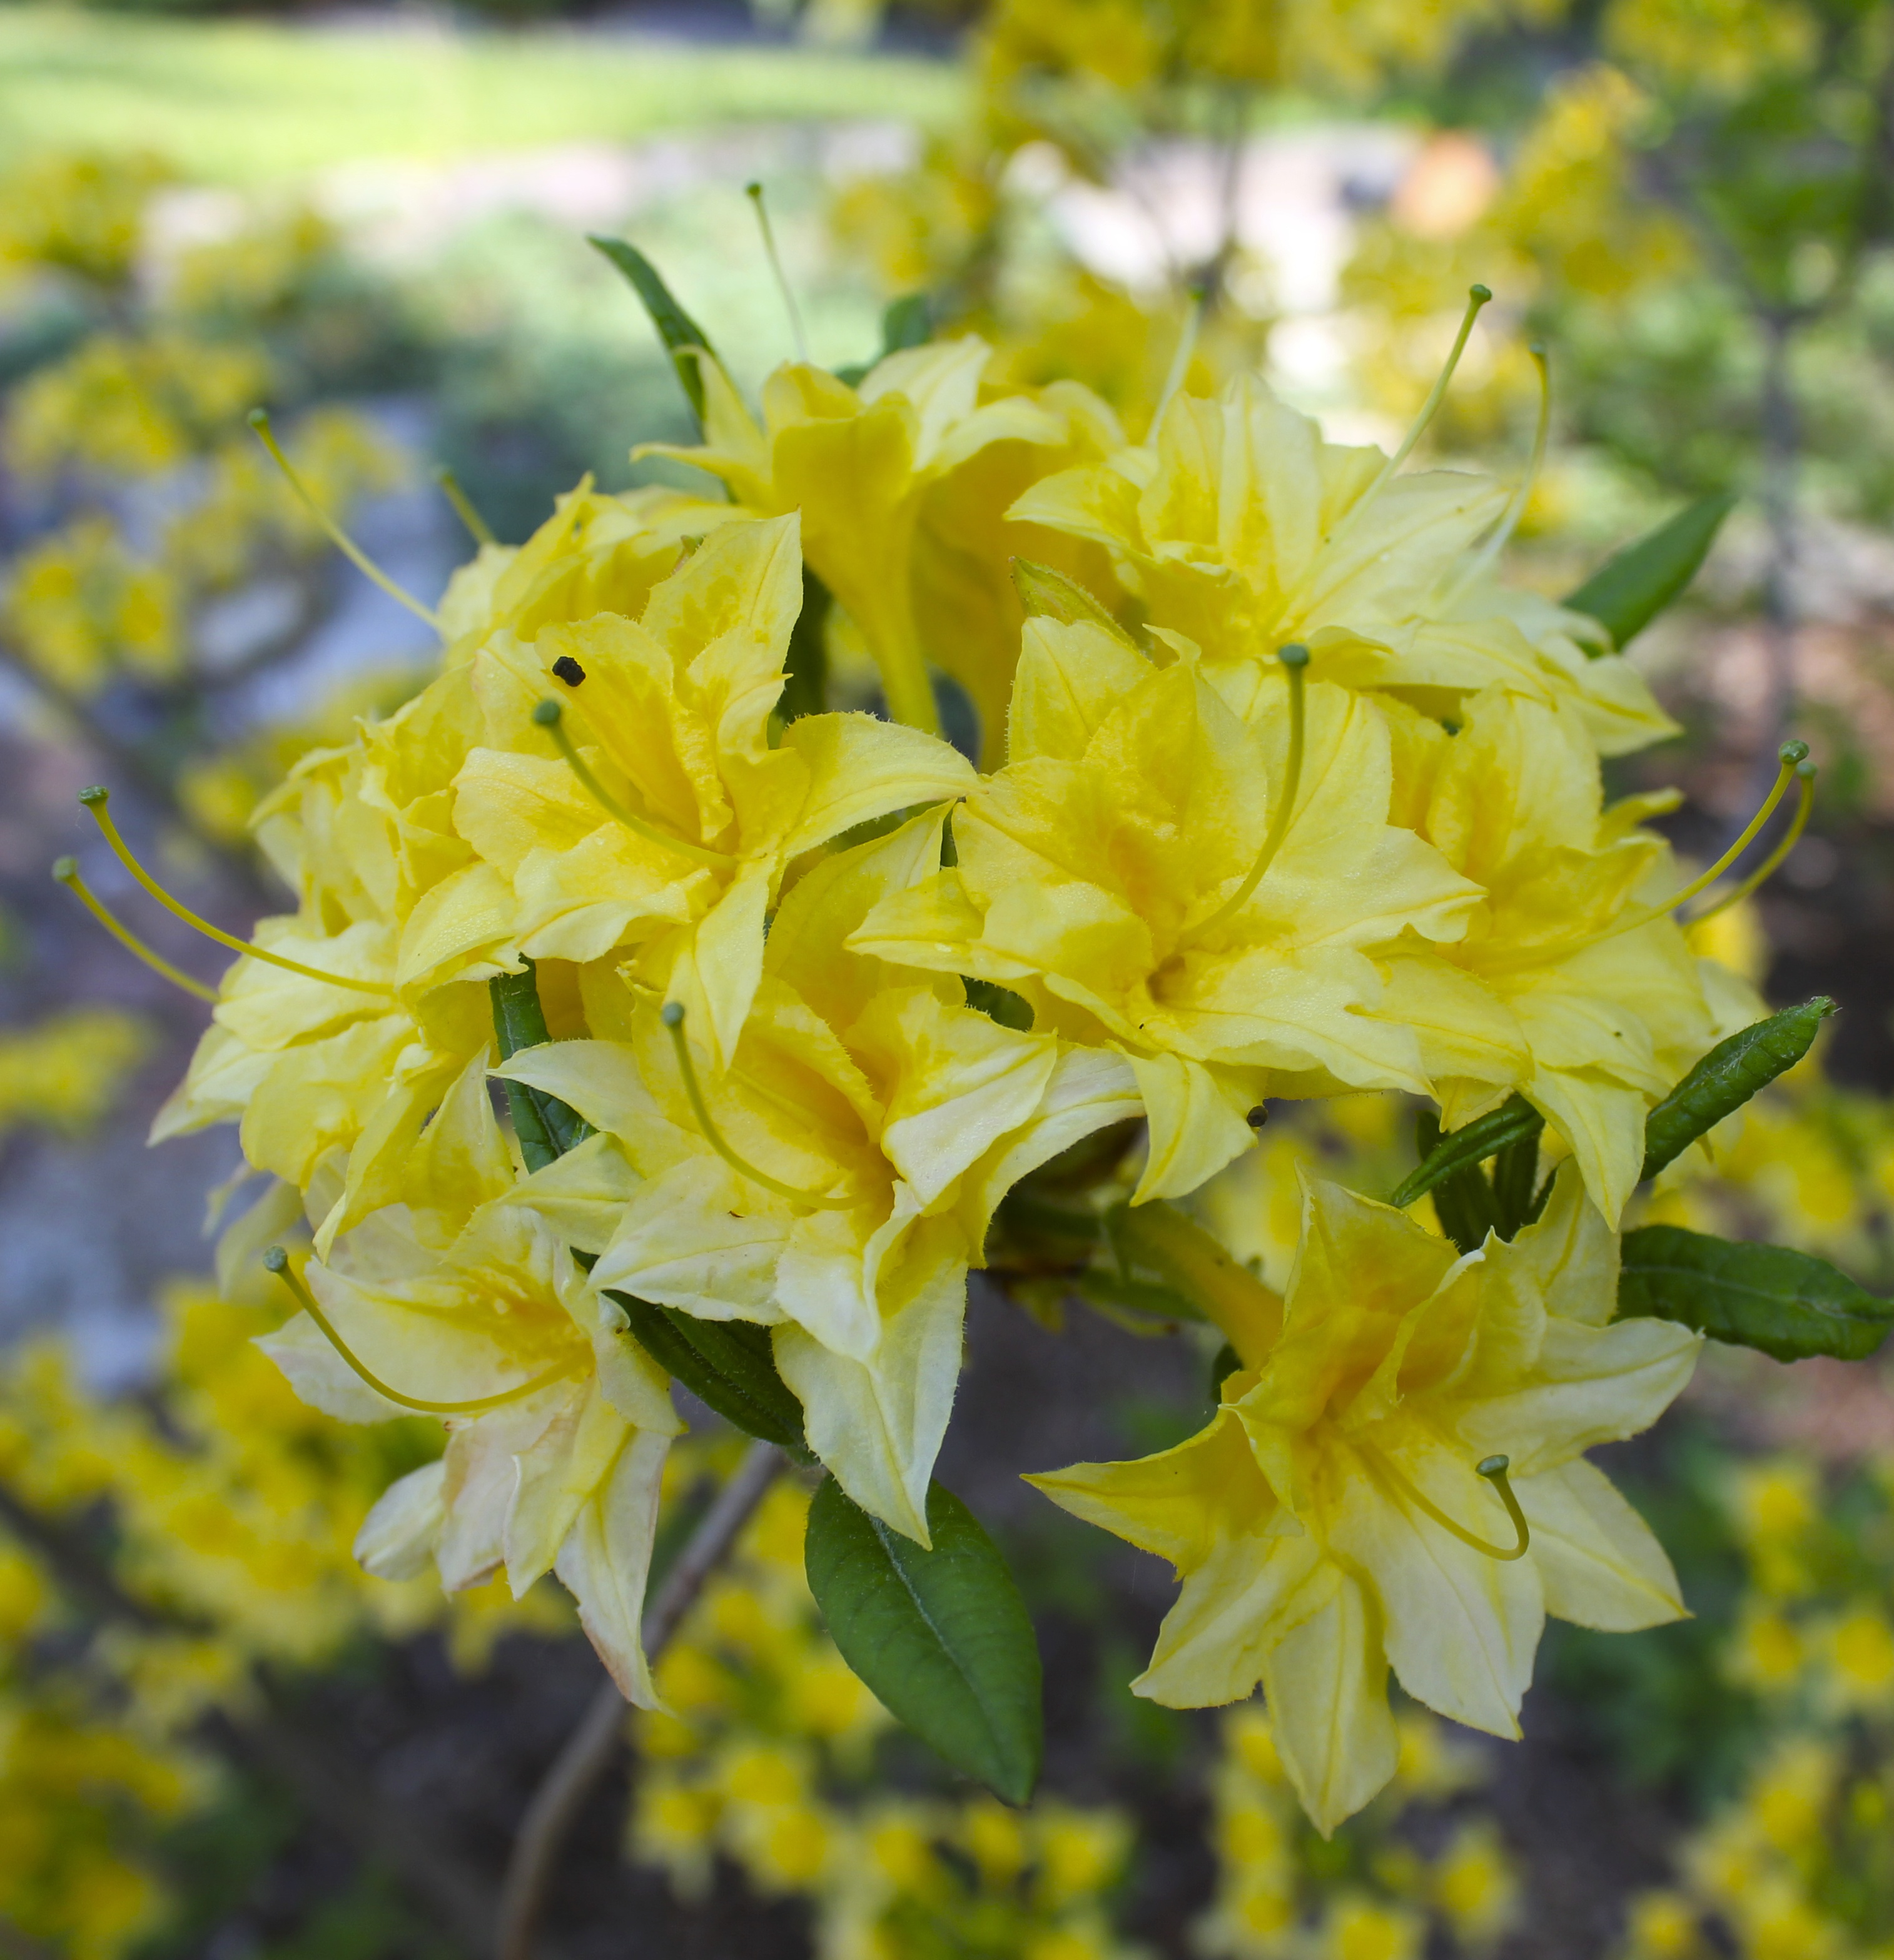 The yellow azalea in bloom excursions for The azalea